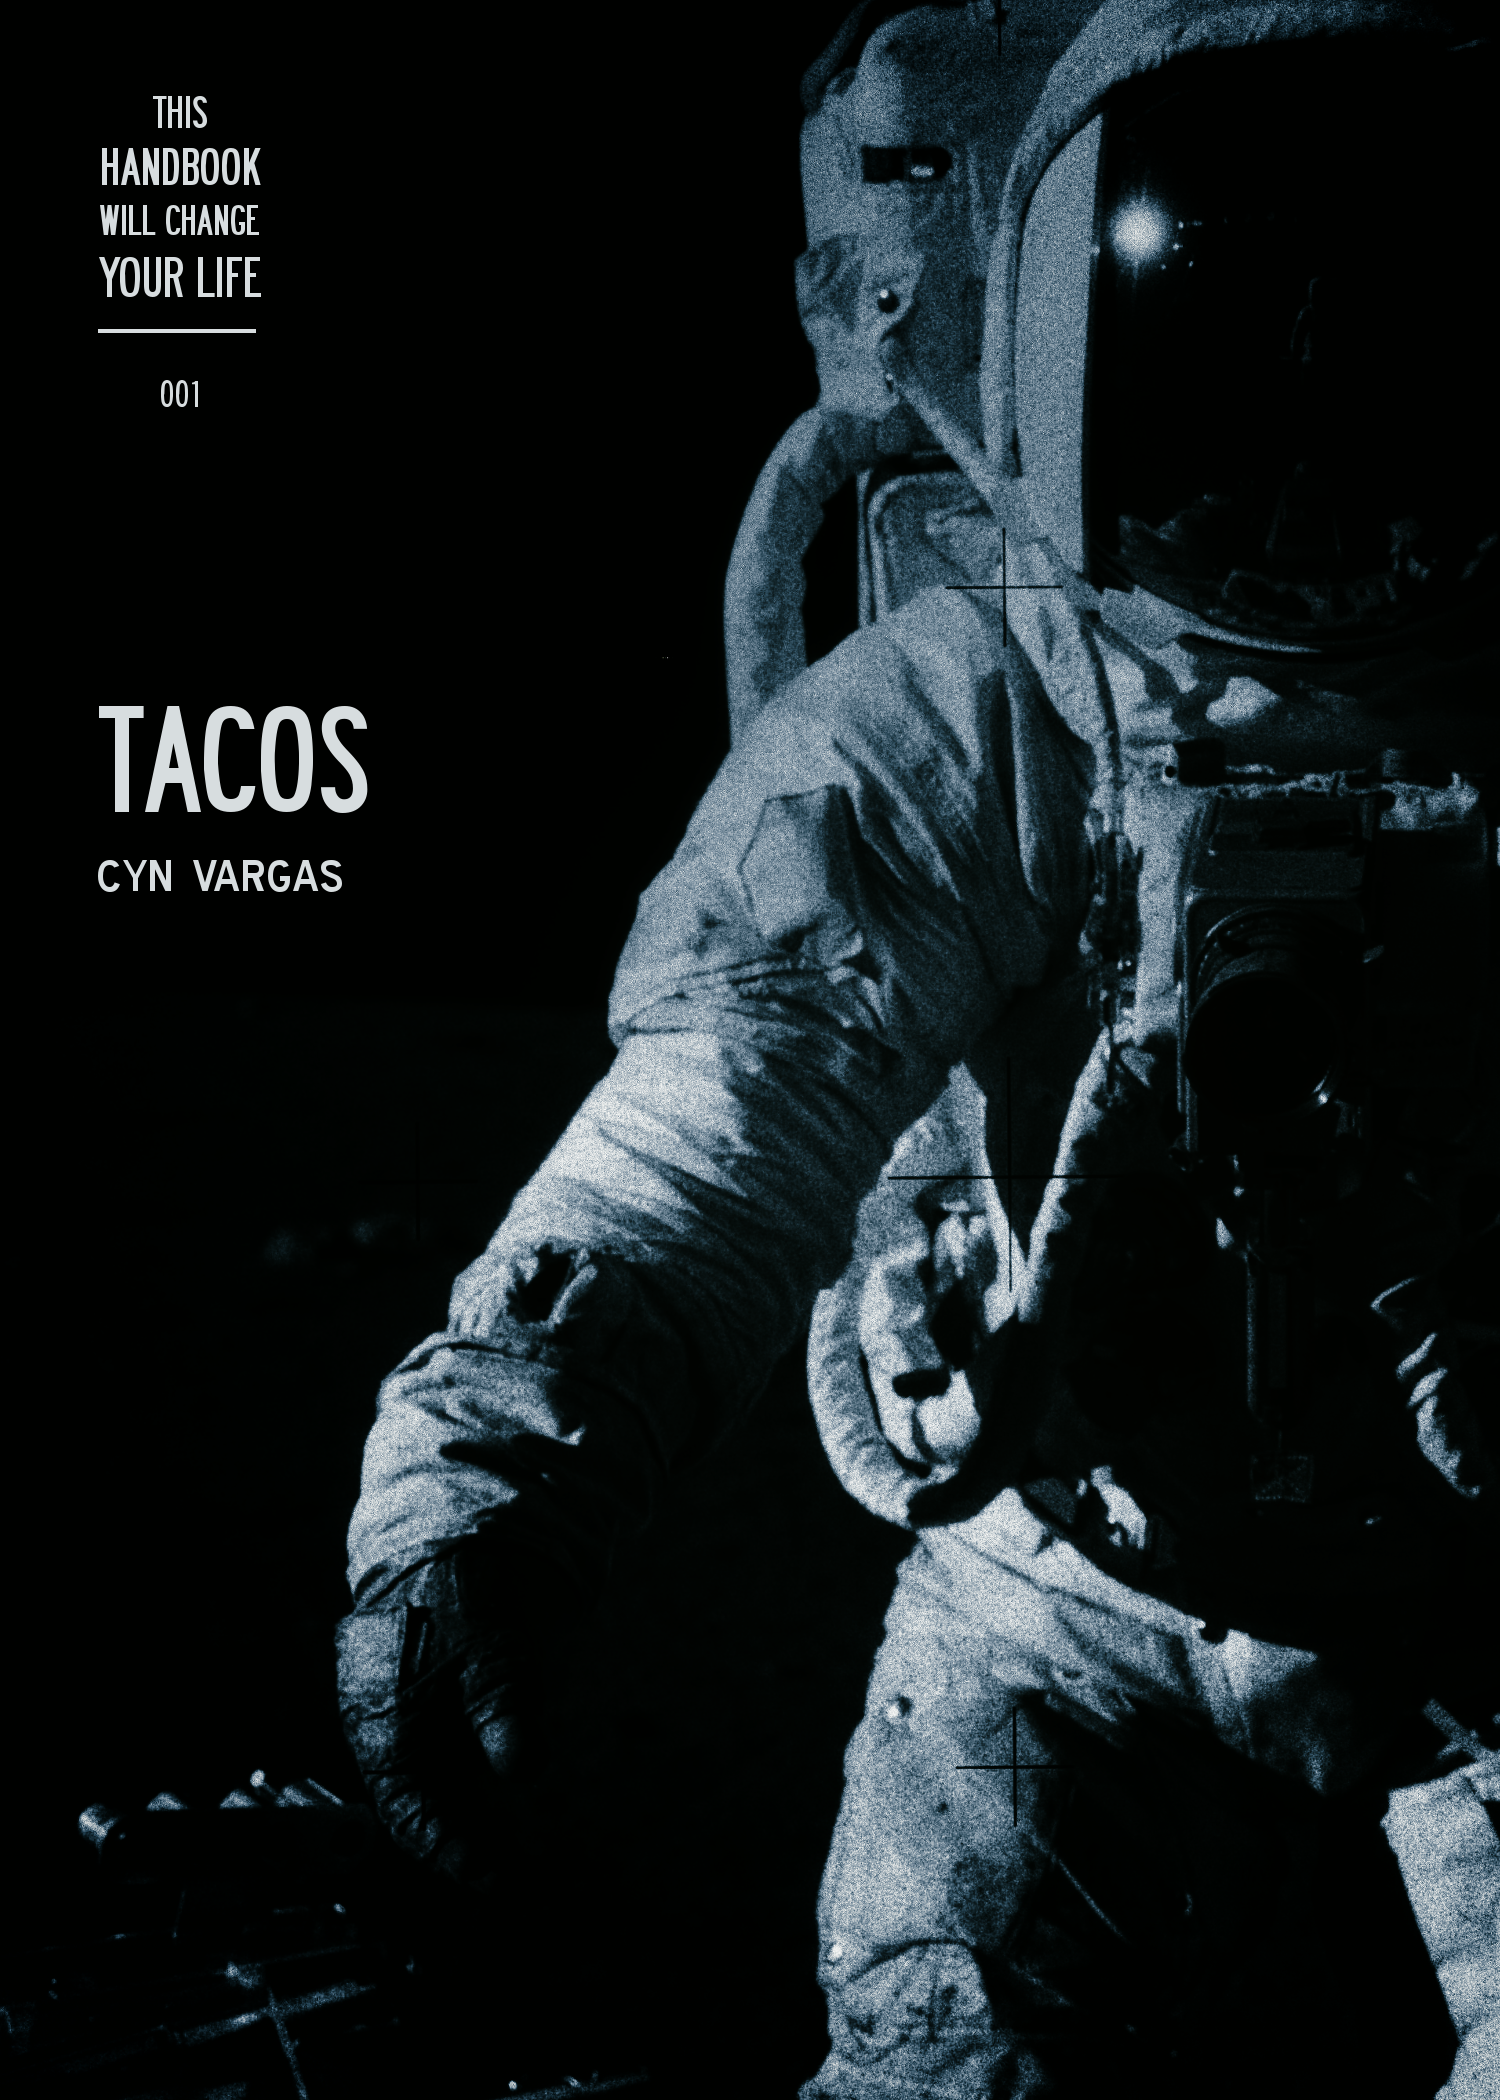 This Handbook Will Change Your Life 001 - TACOS (Volume 1)